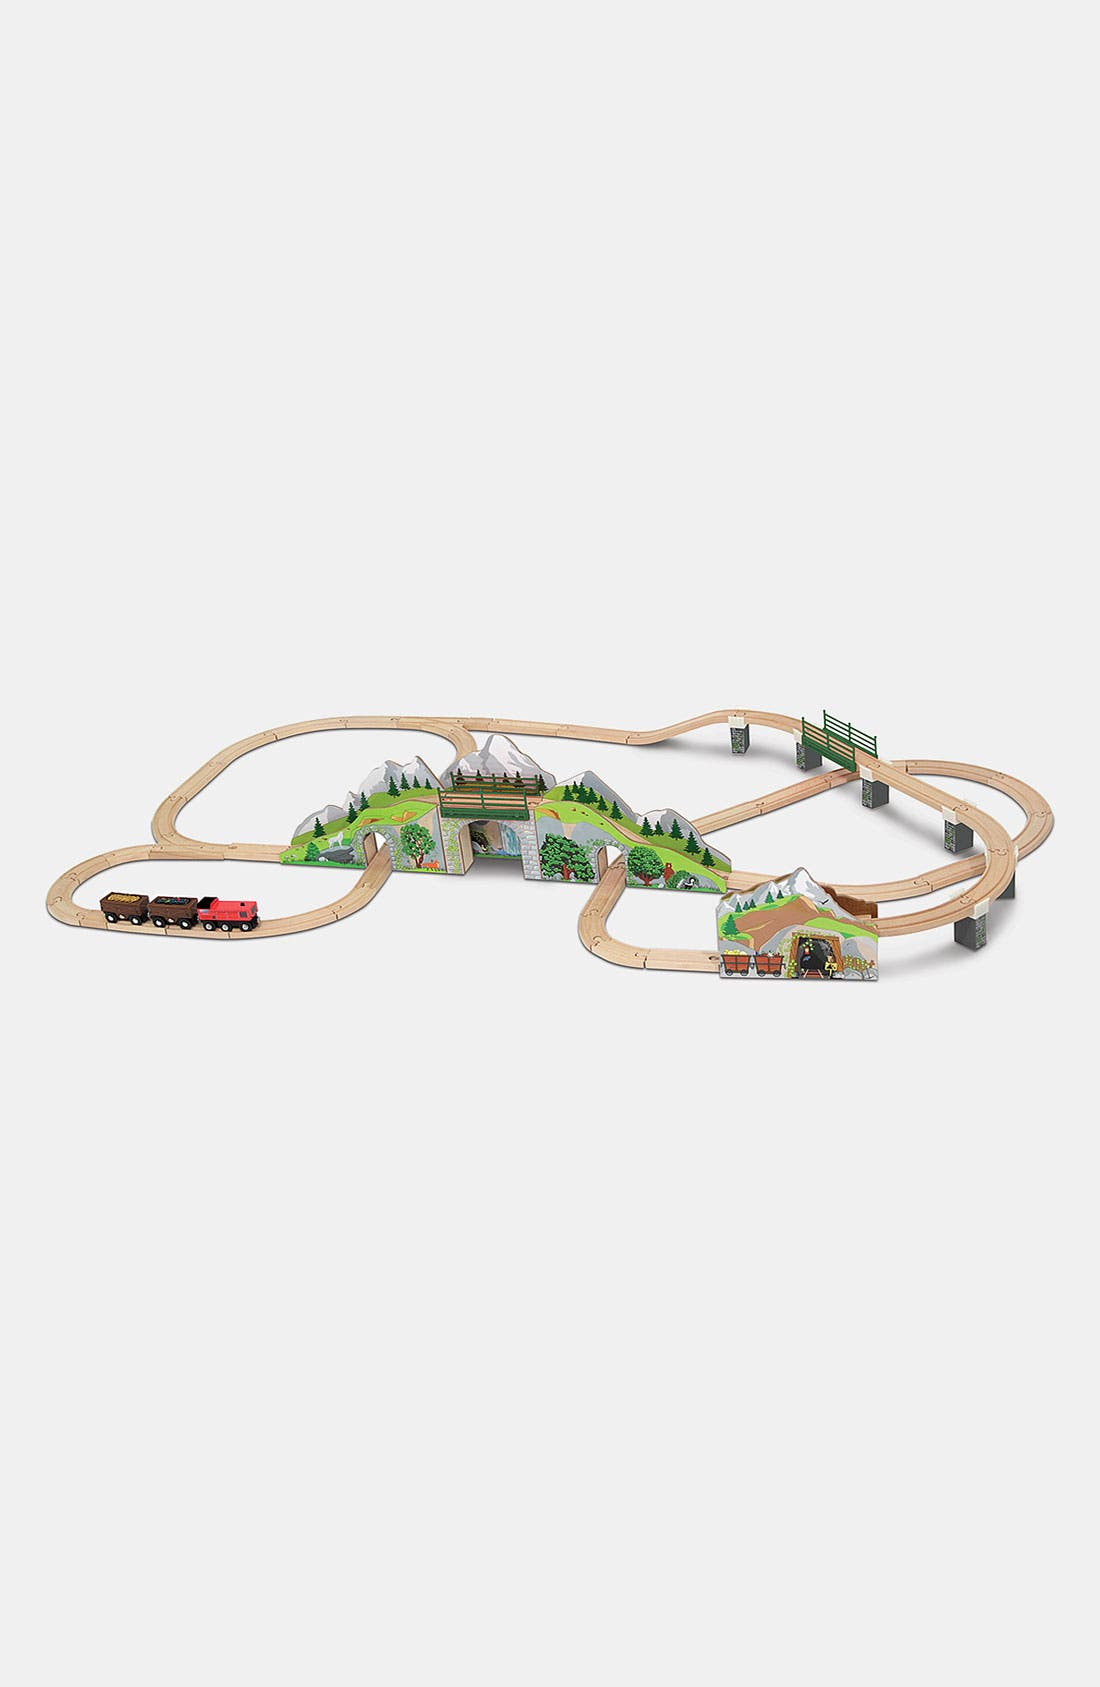 'Mountain Tunnel' Wooden Train Toy,                             Main thumbnail 1, color,                             300